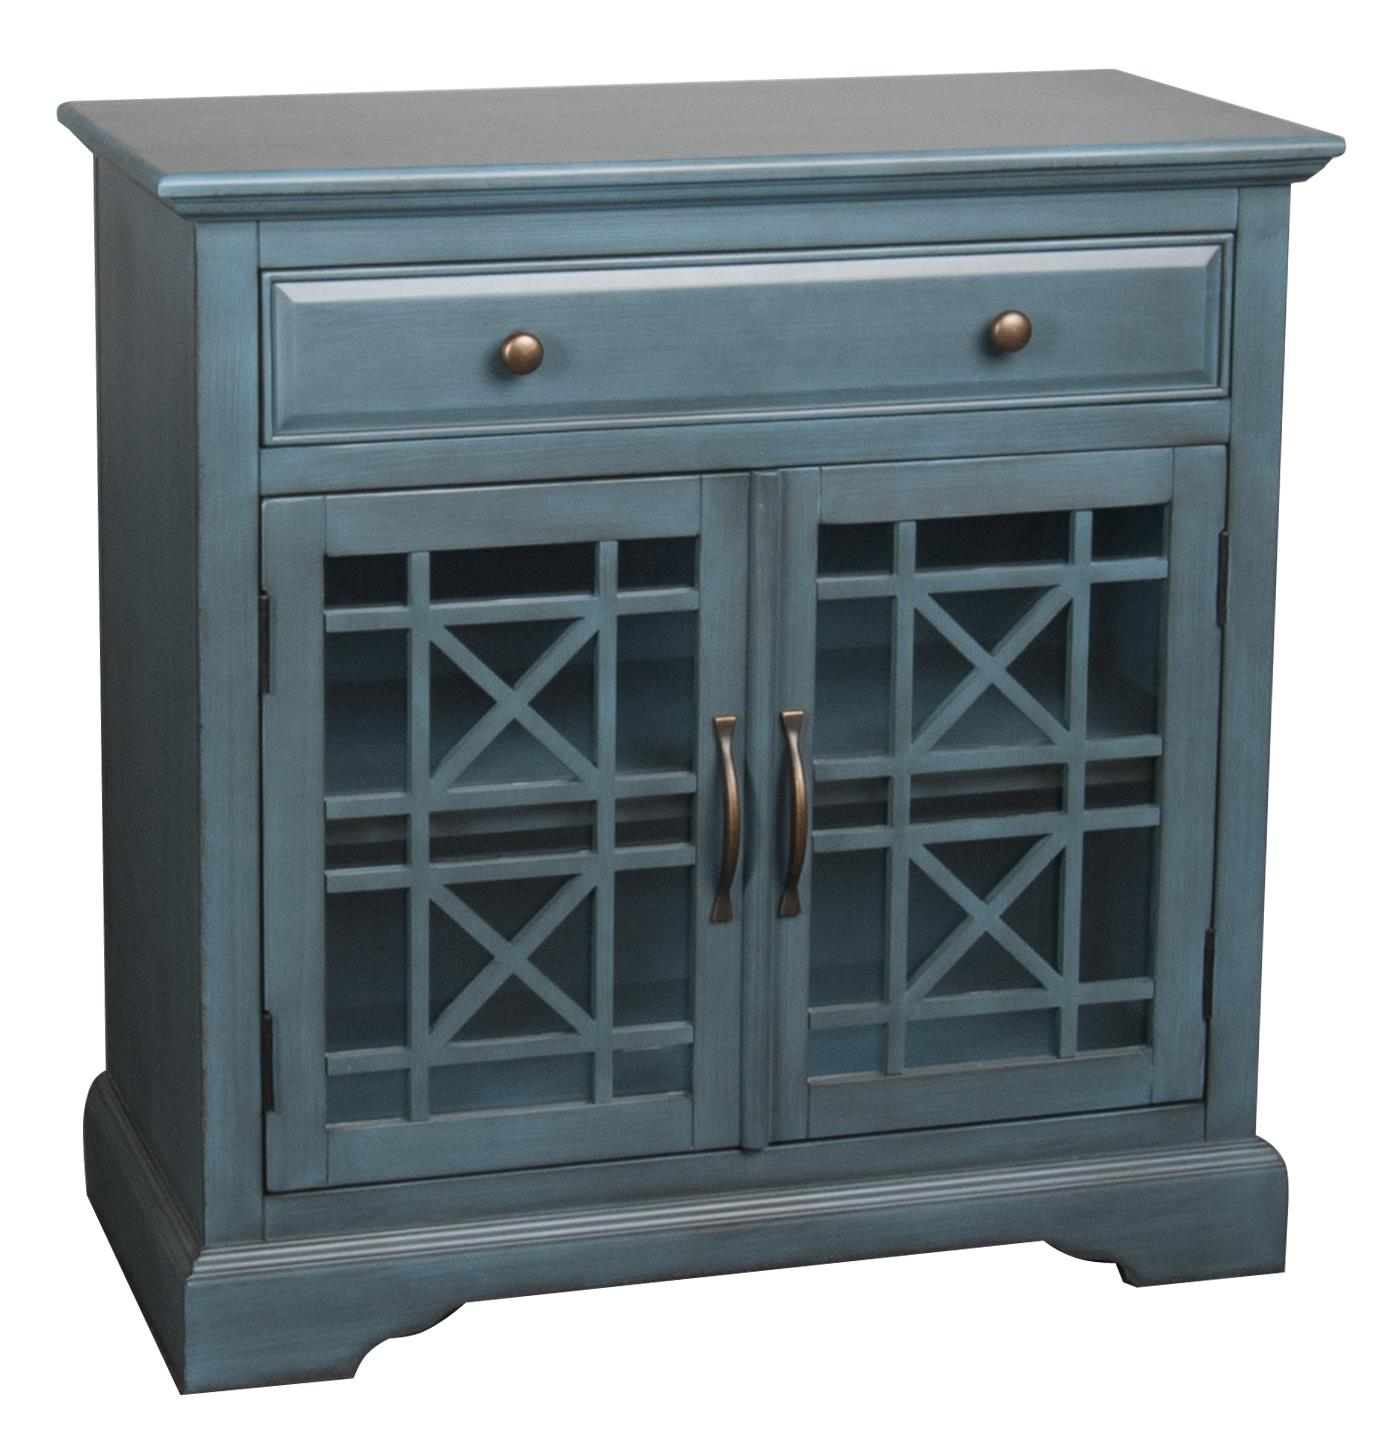 Morris Home Furnishings Limetree Limetree Cabinet - Item Number: 399997719